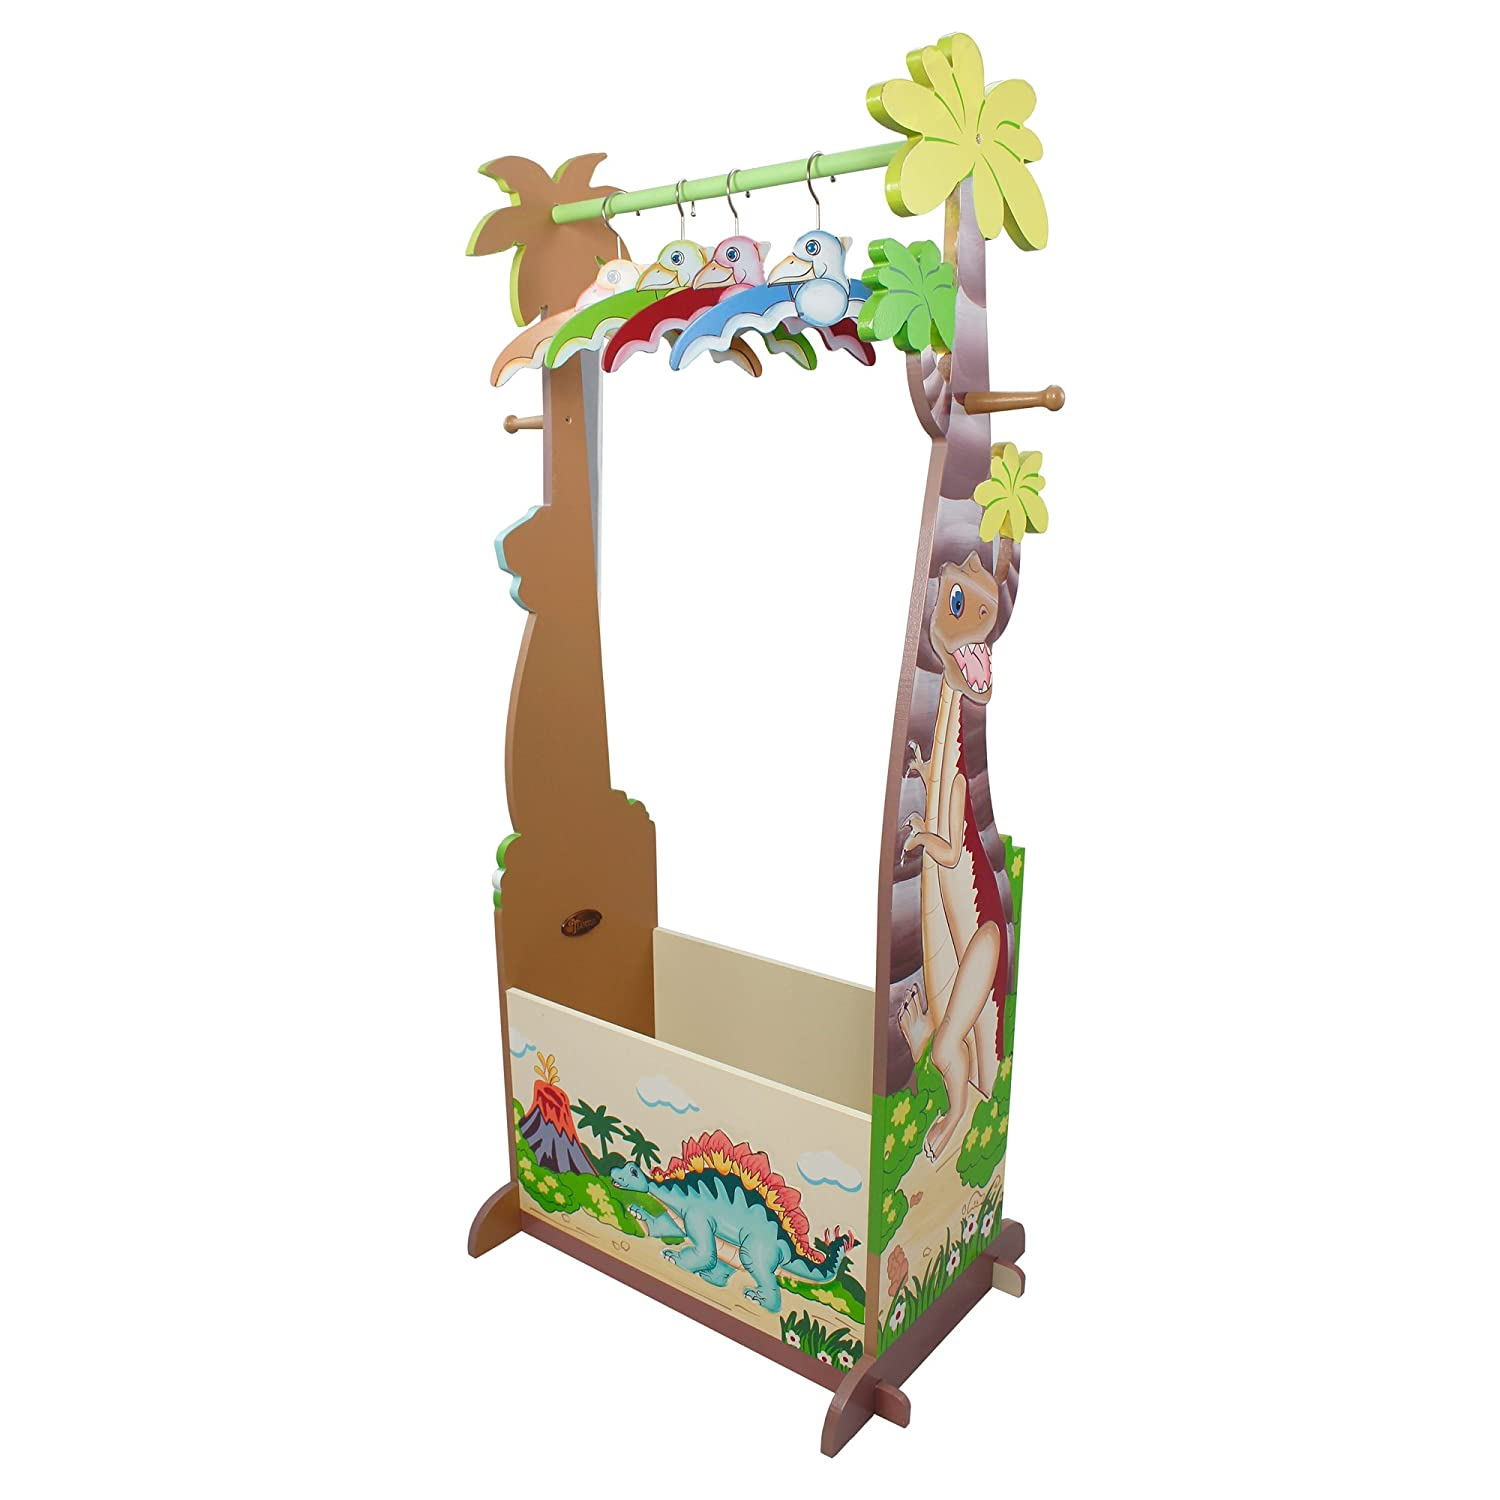 Fantasy Fields - Dinosaur Kingdom Thematic Wooden Dress Up Storage Station with Set of 4 Hangers | Imagination Inspiring Hand Crafted & Hand Painted Details | Non-Toxic, Lead Free Water-based Paint TD-0067A